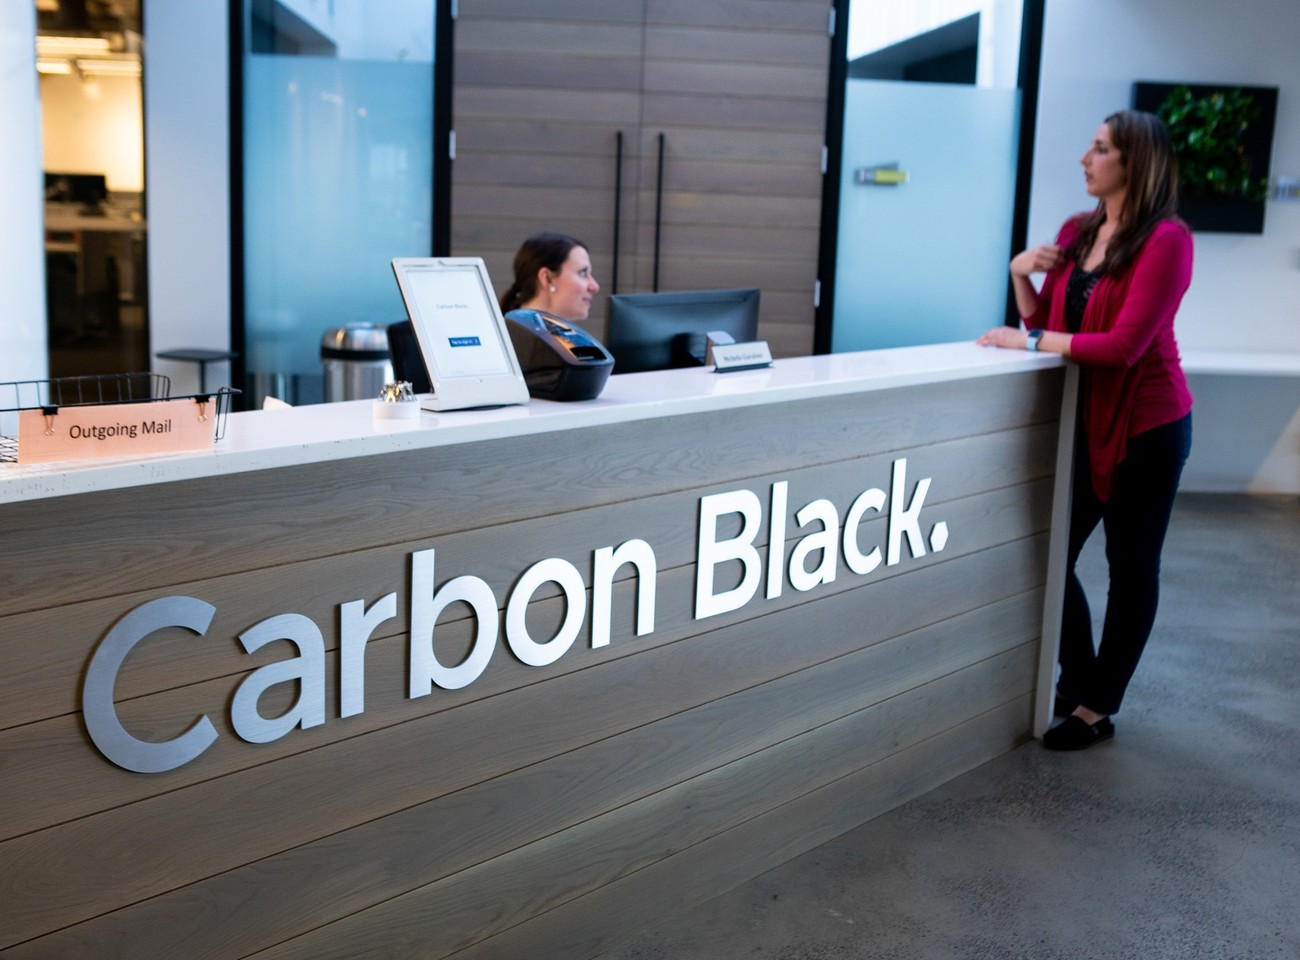 Carbon Black Careers